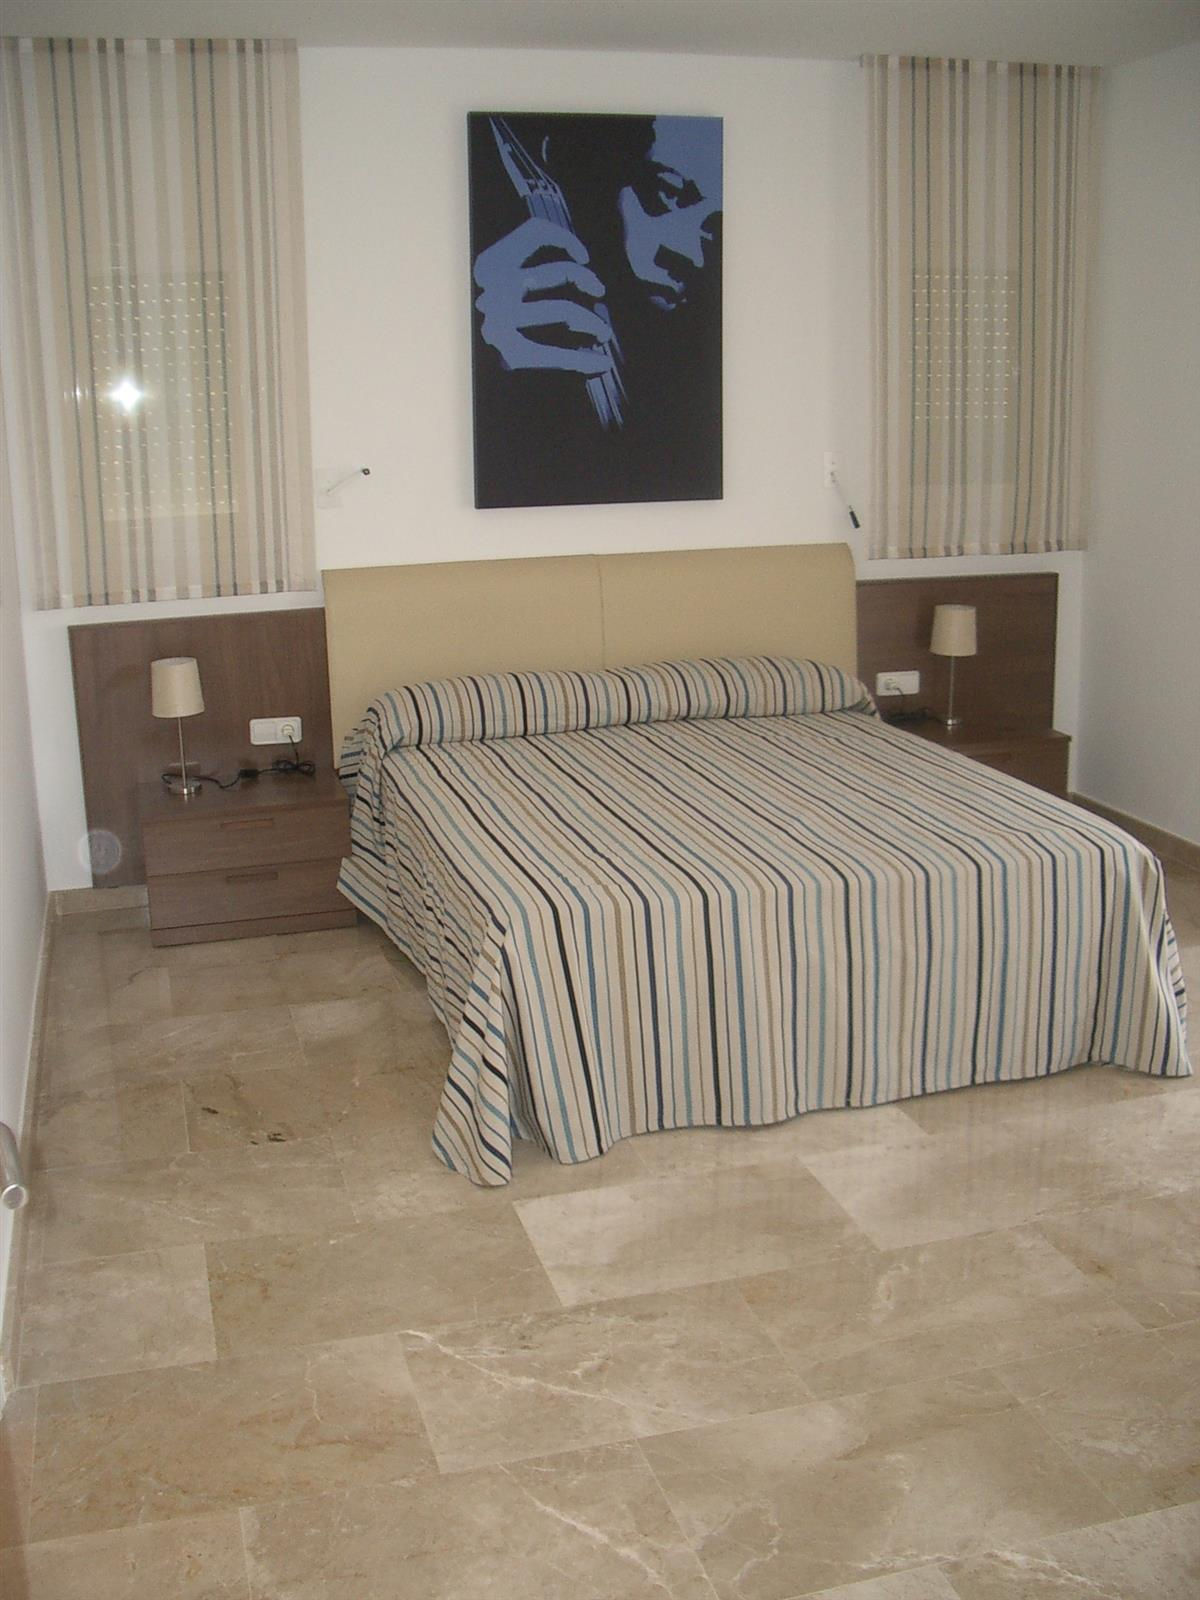 Holiday villa for rent in l 39 estartit torre vella l 39 estartit vacation villa 12239 Master bedroom upstairs or downstairs